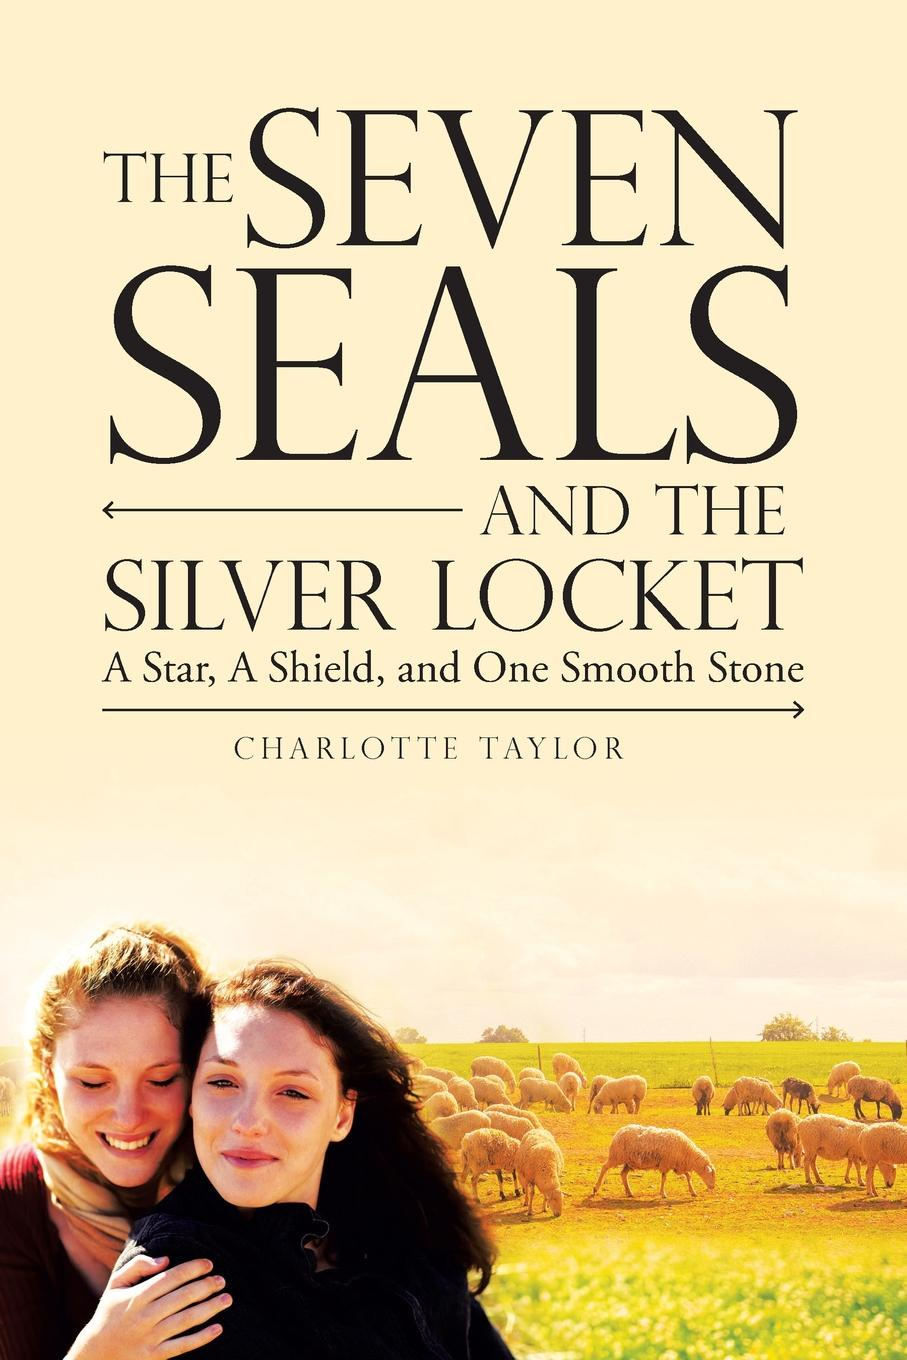 CHARLOTTE TAYLOR The Seven Seals and the Silver Locket. A Star, a Shield and One Smooth Stone the family family a song for me lp